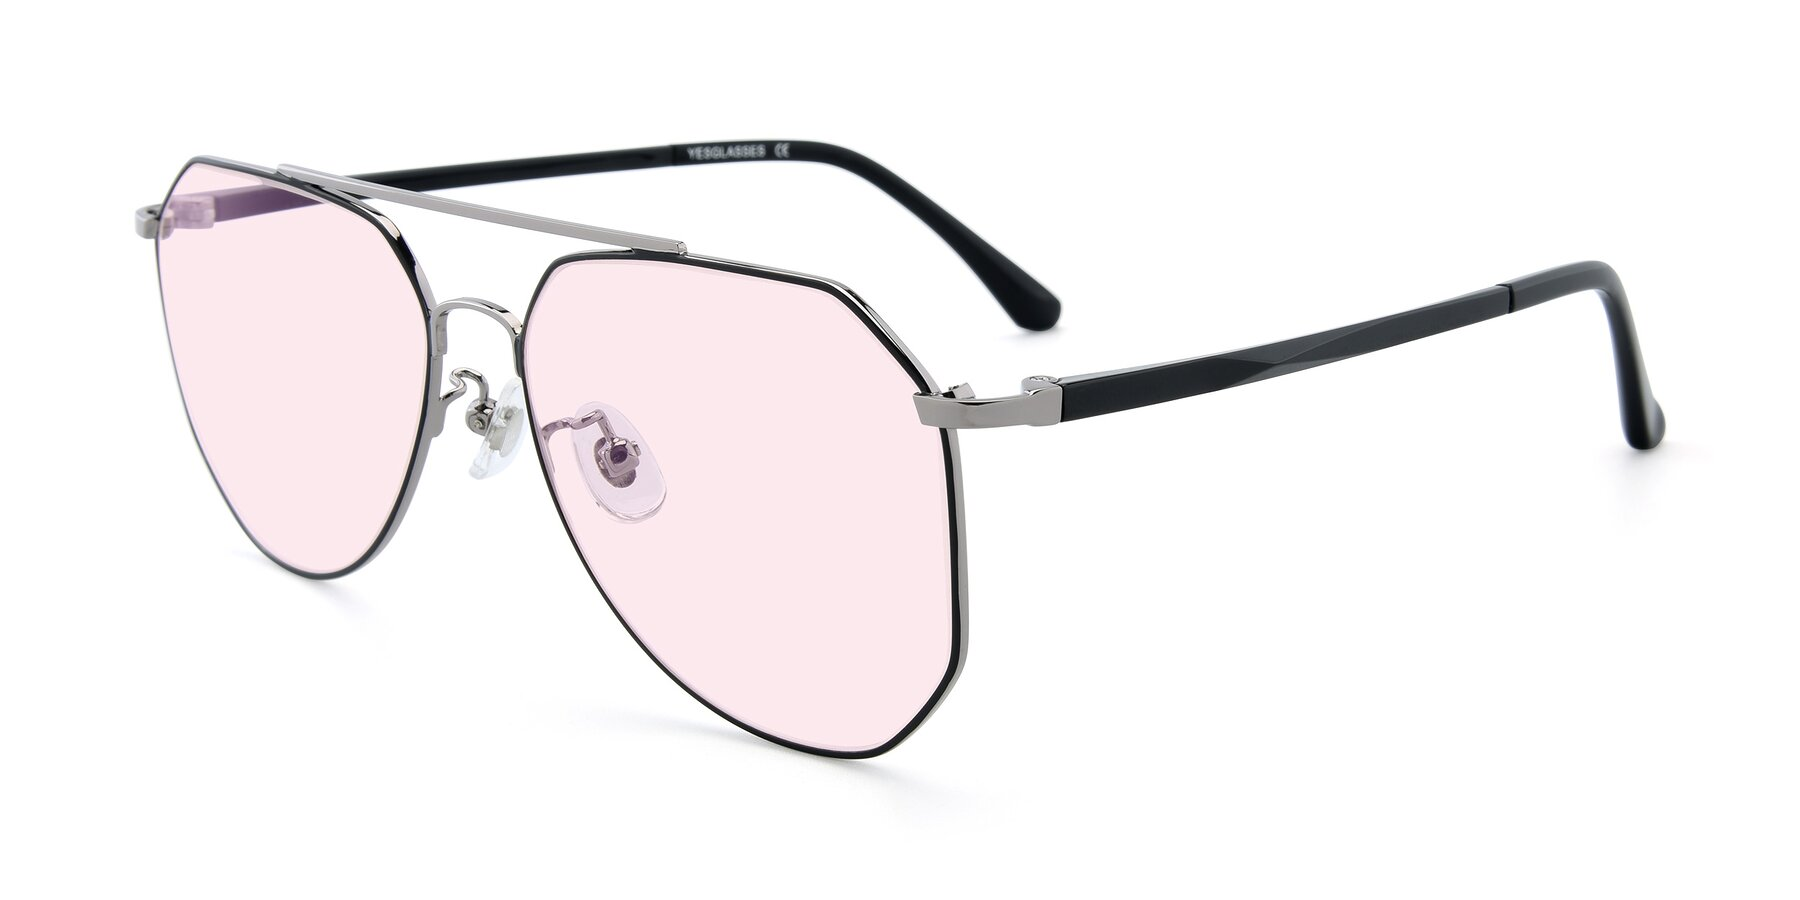 Angle of XC-8040 in Black/ Gun with Light Pink Tinted Lenses